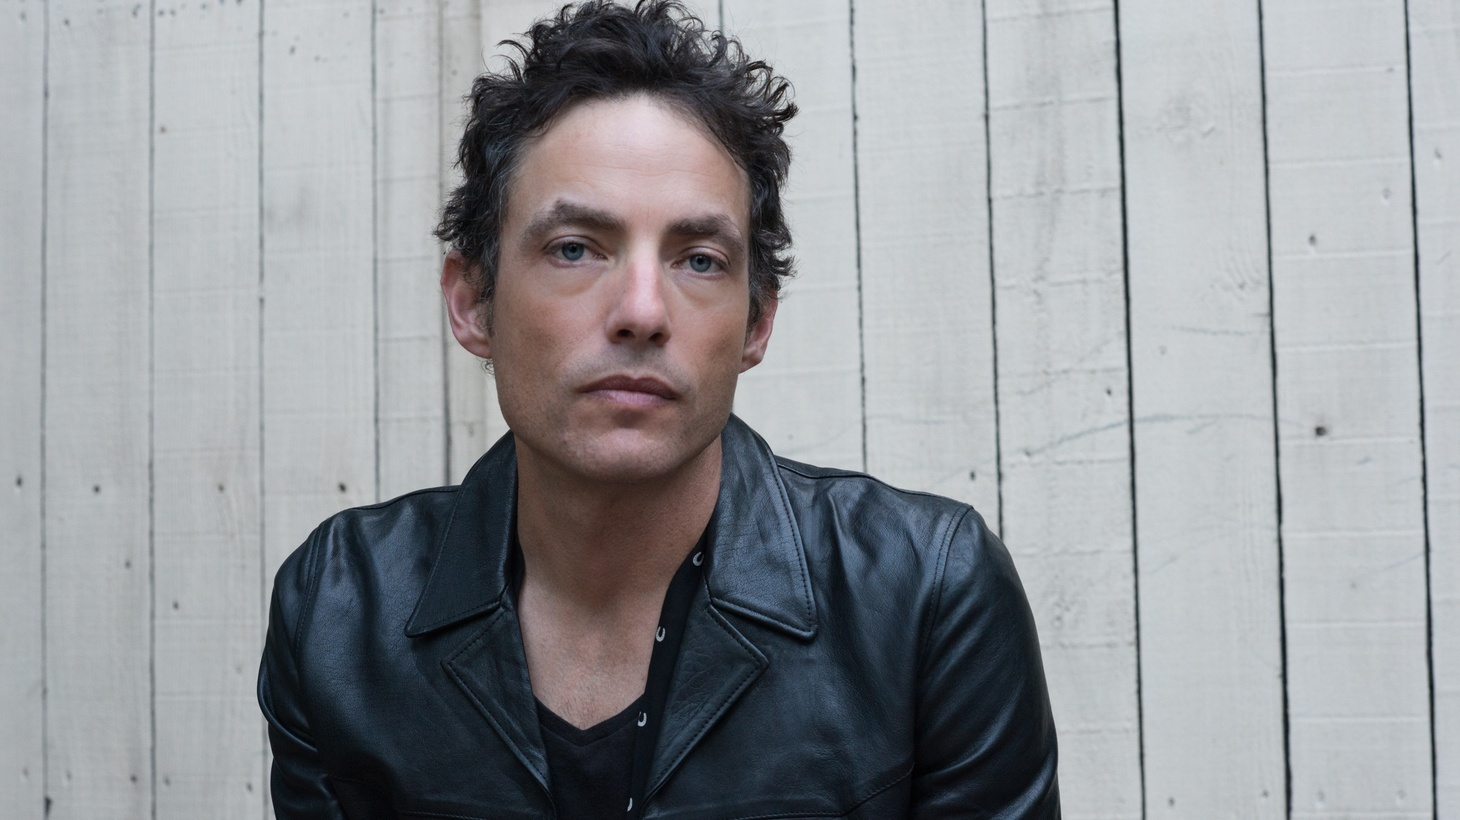 """If all goes well, The Wallflowers will launch a 53-date arena tour in 2022 after releasing their first album in nearly a decade. The album """"Exit Wounds"""" is a beacon for us all, a tribute to the rough year we've made it through."""